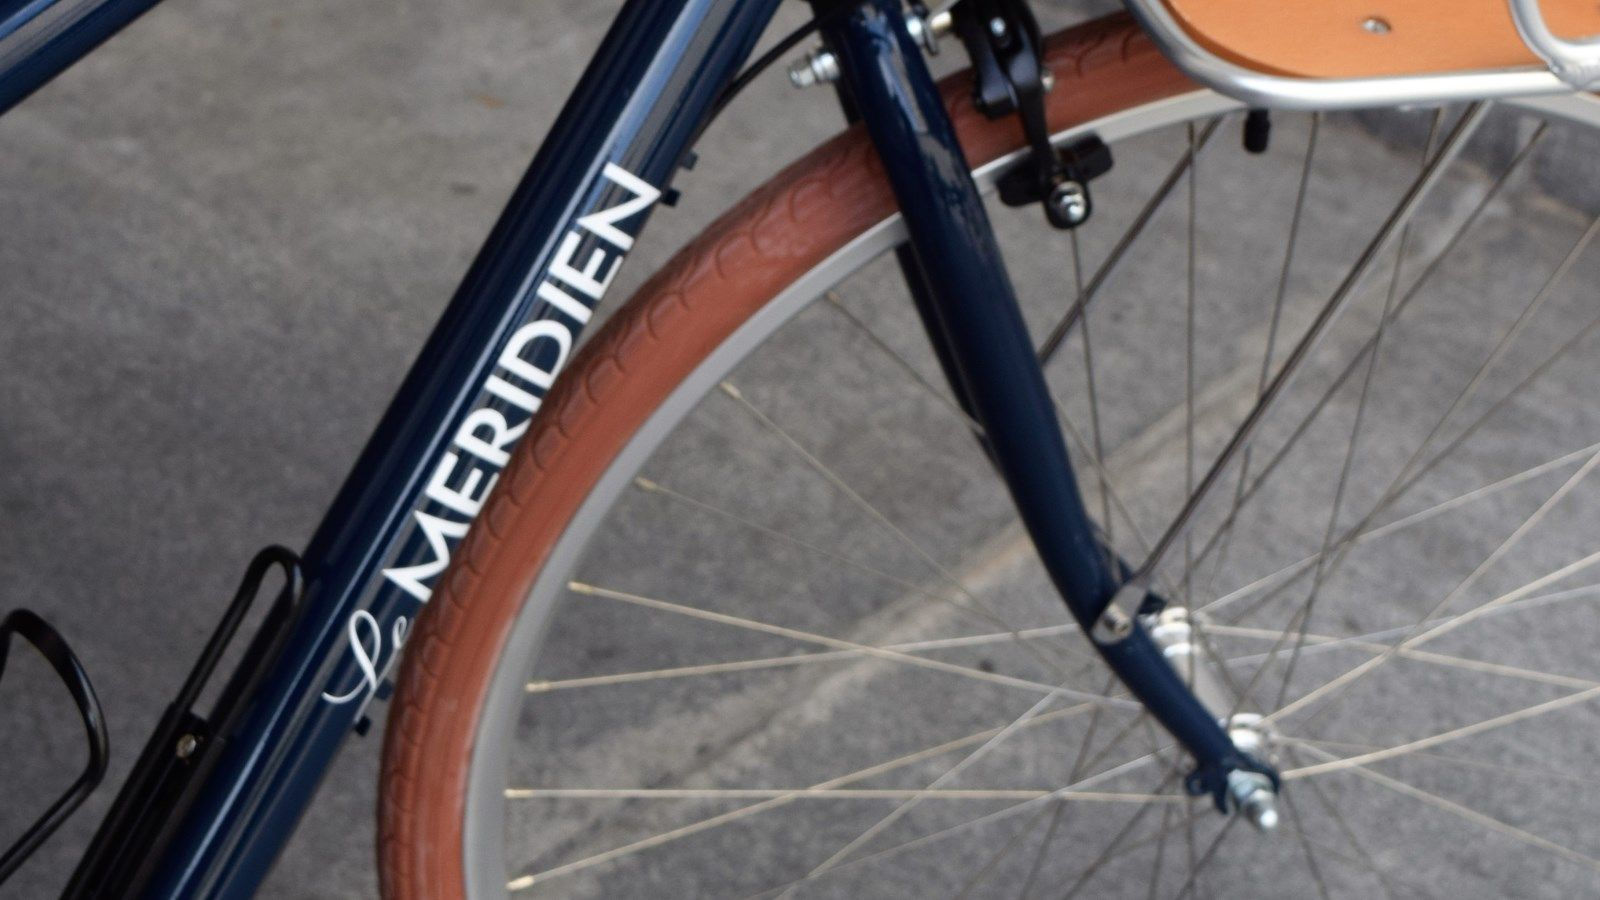 le meridien bicycle